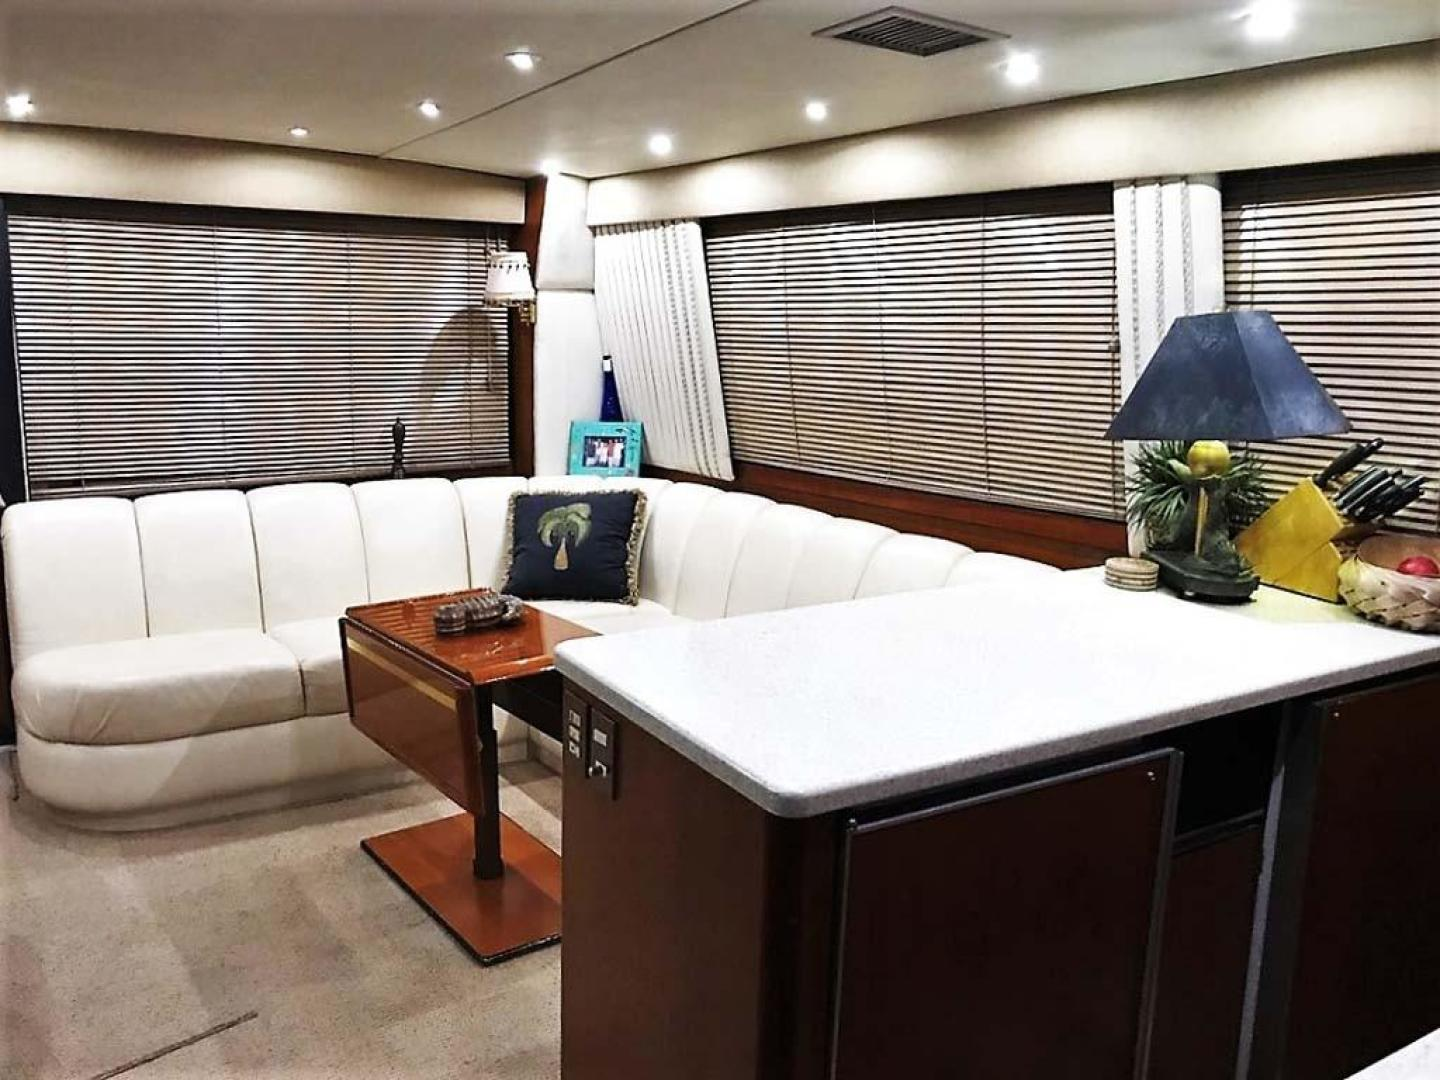 Ocean-Yachts-53-Super-Sport-1998-Made-in-the-Shade-Stuart-United-States-Salon-929954